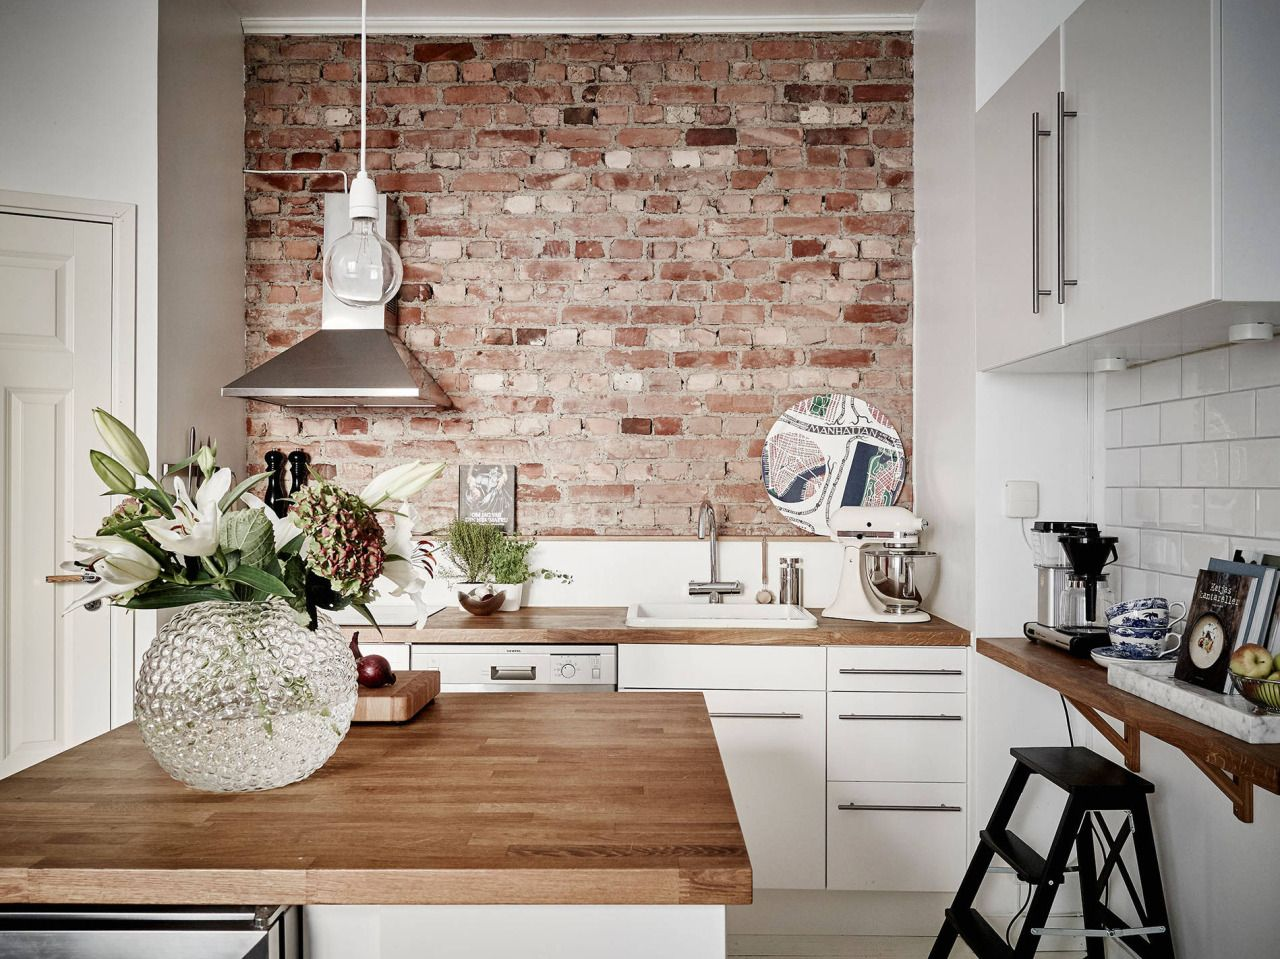 Kitchen Tiled Walls 17 Best Ideas About Brick Tiles On Pinterest Laundry Room Tile